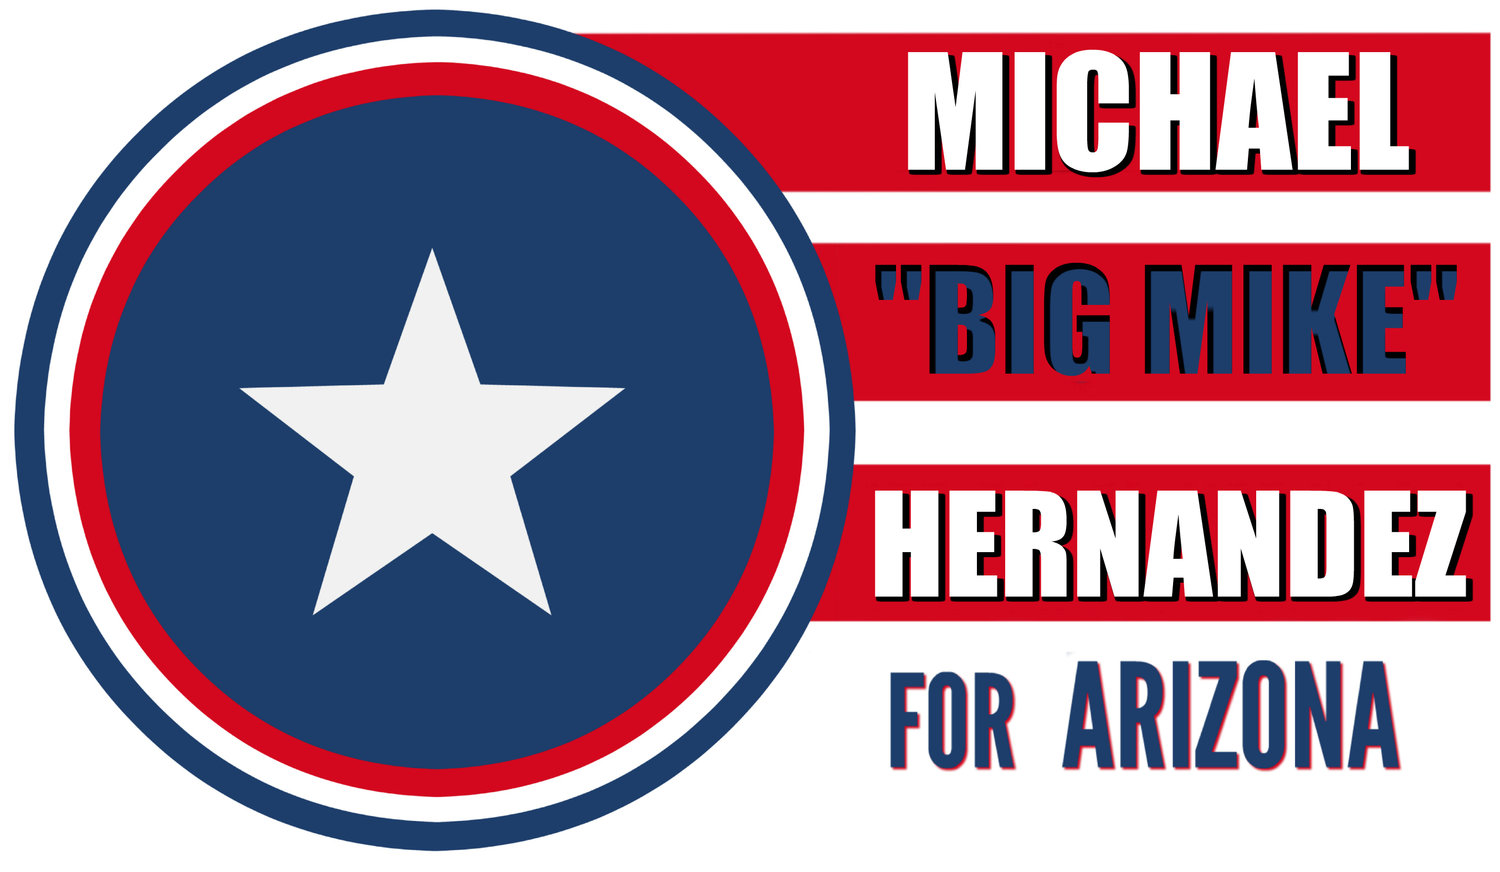 Big Mike For Arizona